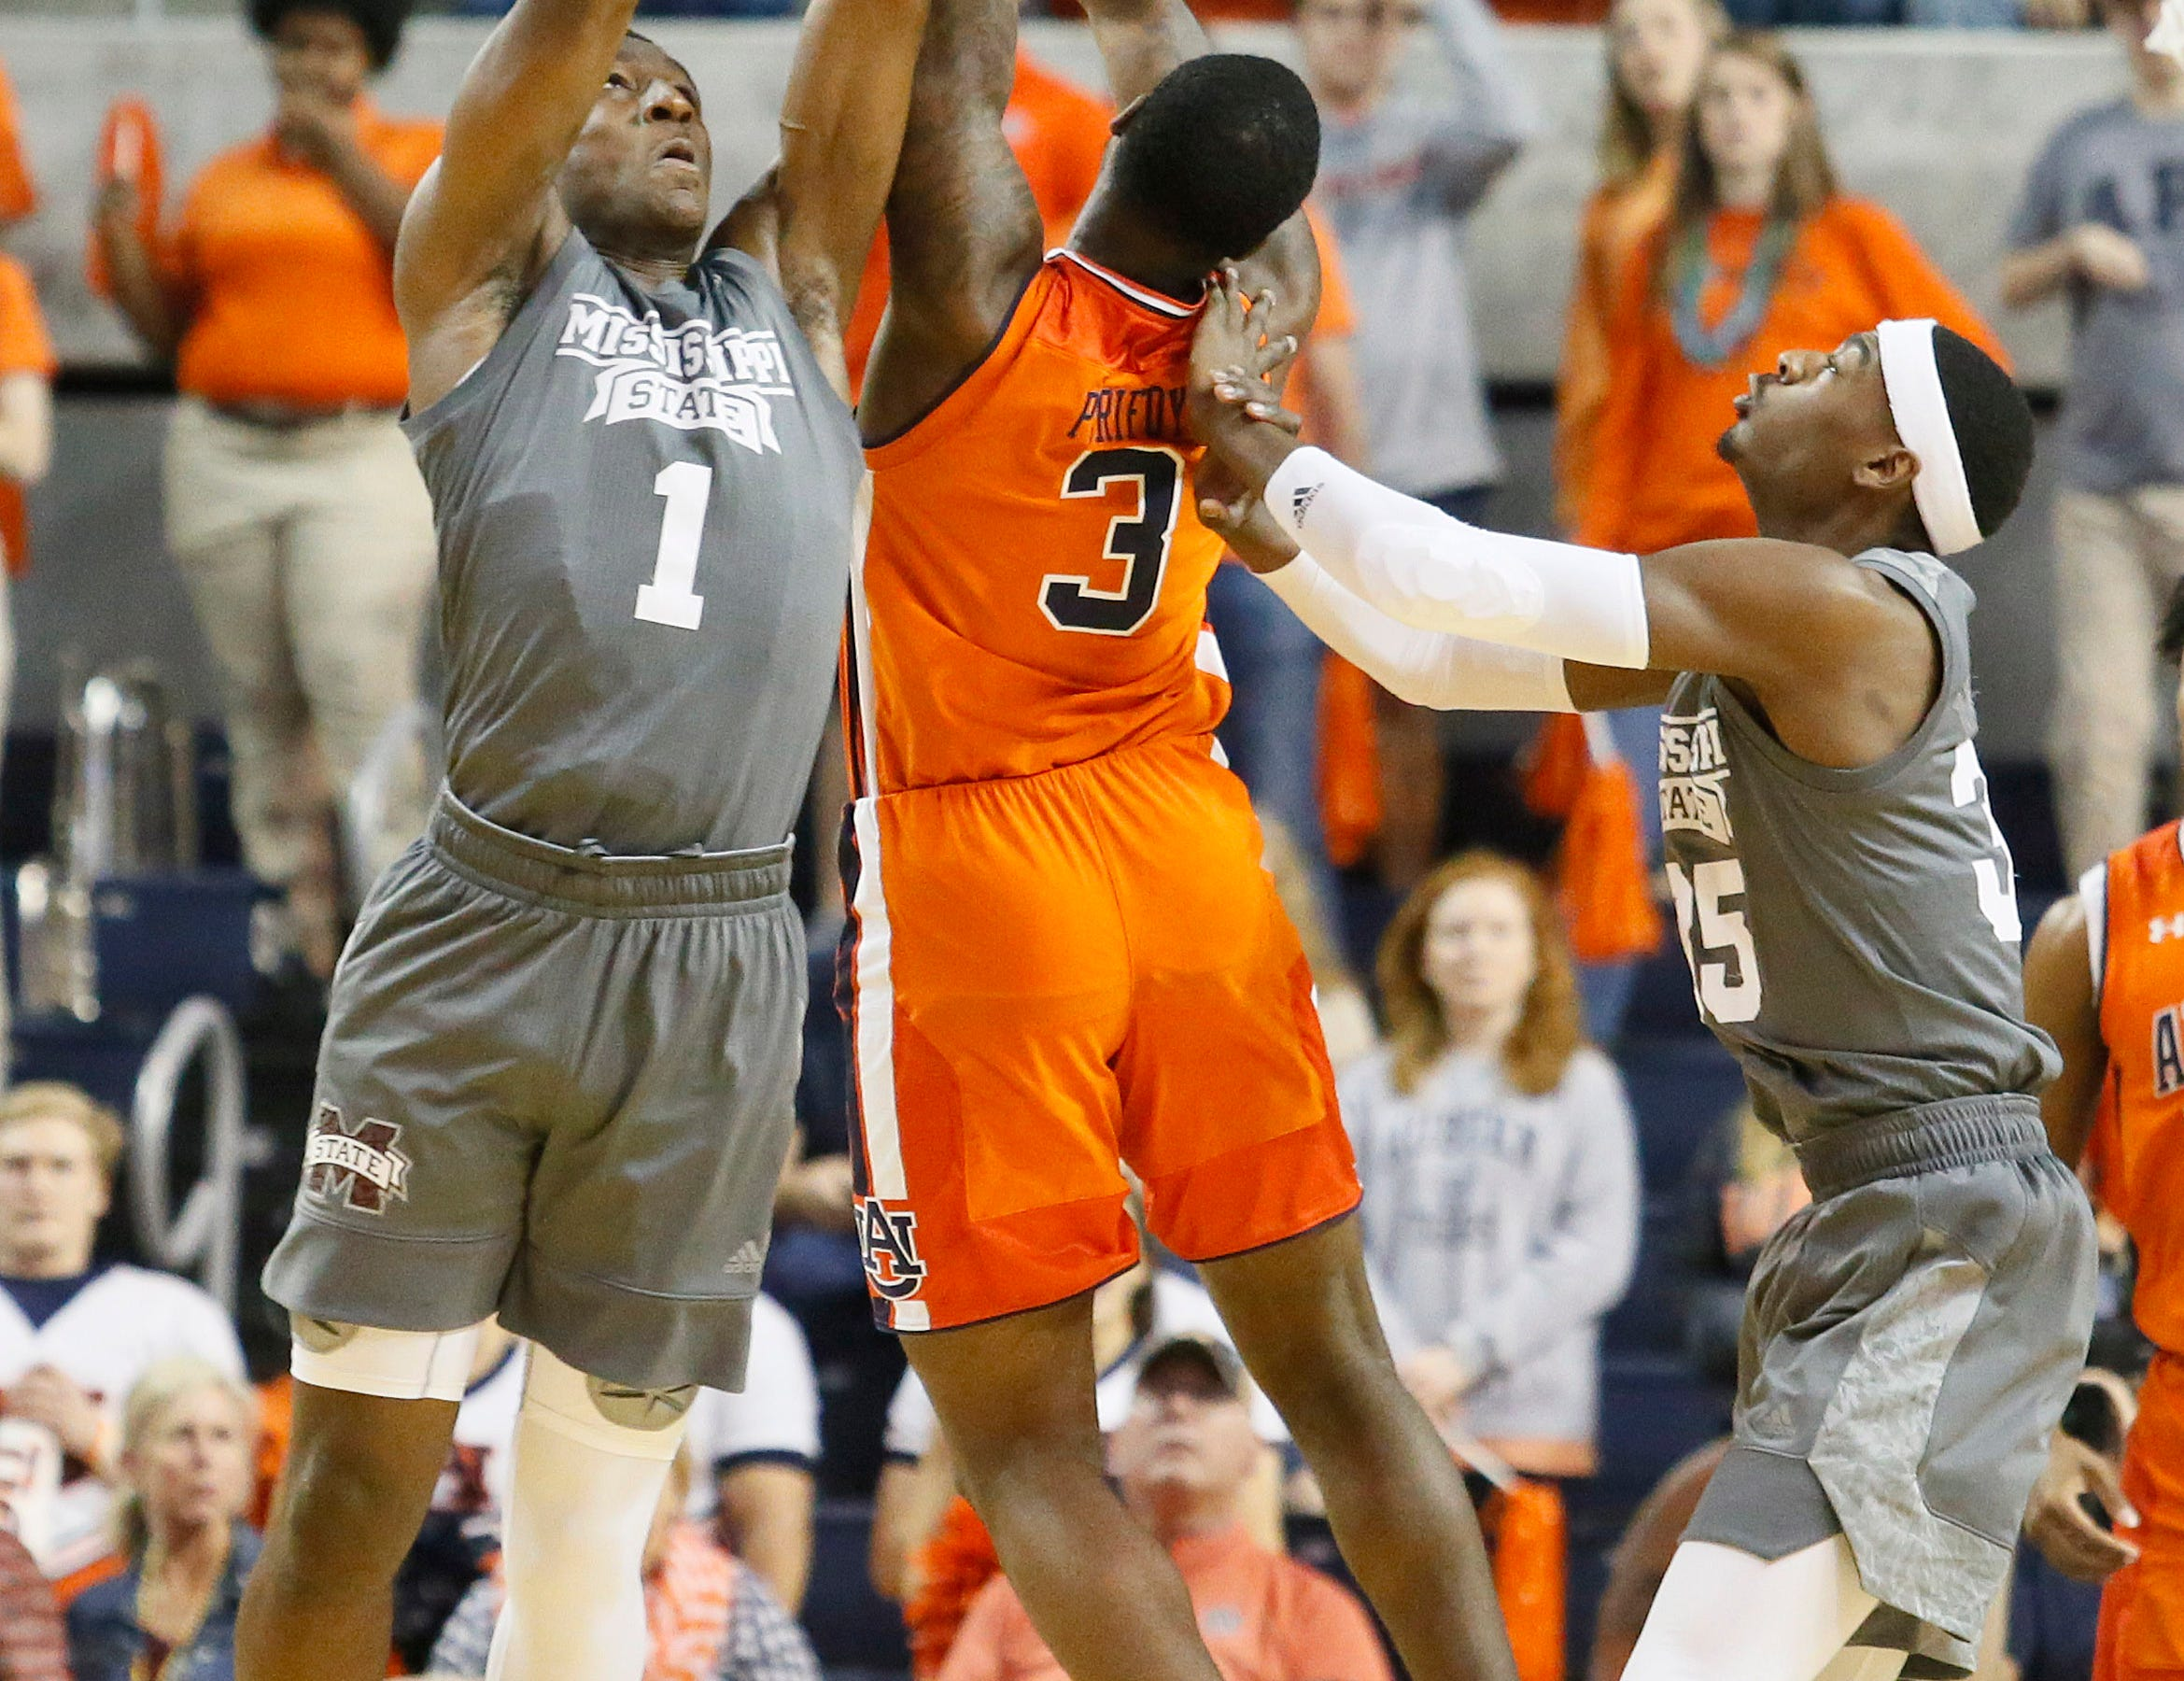 Mar 2, 2019; Auburn, AL, USA; Mississippi State Bulldogs forward Reggie Perry (1) and forward Aric Holman (35) battle for a rebound with Auburn Tigers forward Danjel Purifoy (3) during the first half at Auburn Arena. Mandatory Credit: John Reed-USA TODAY Sports